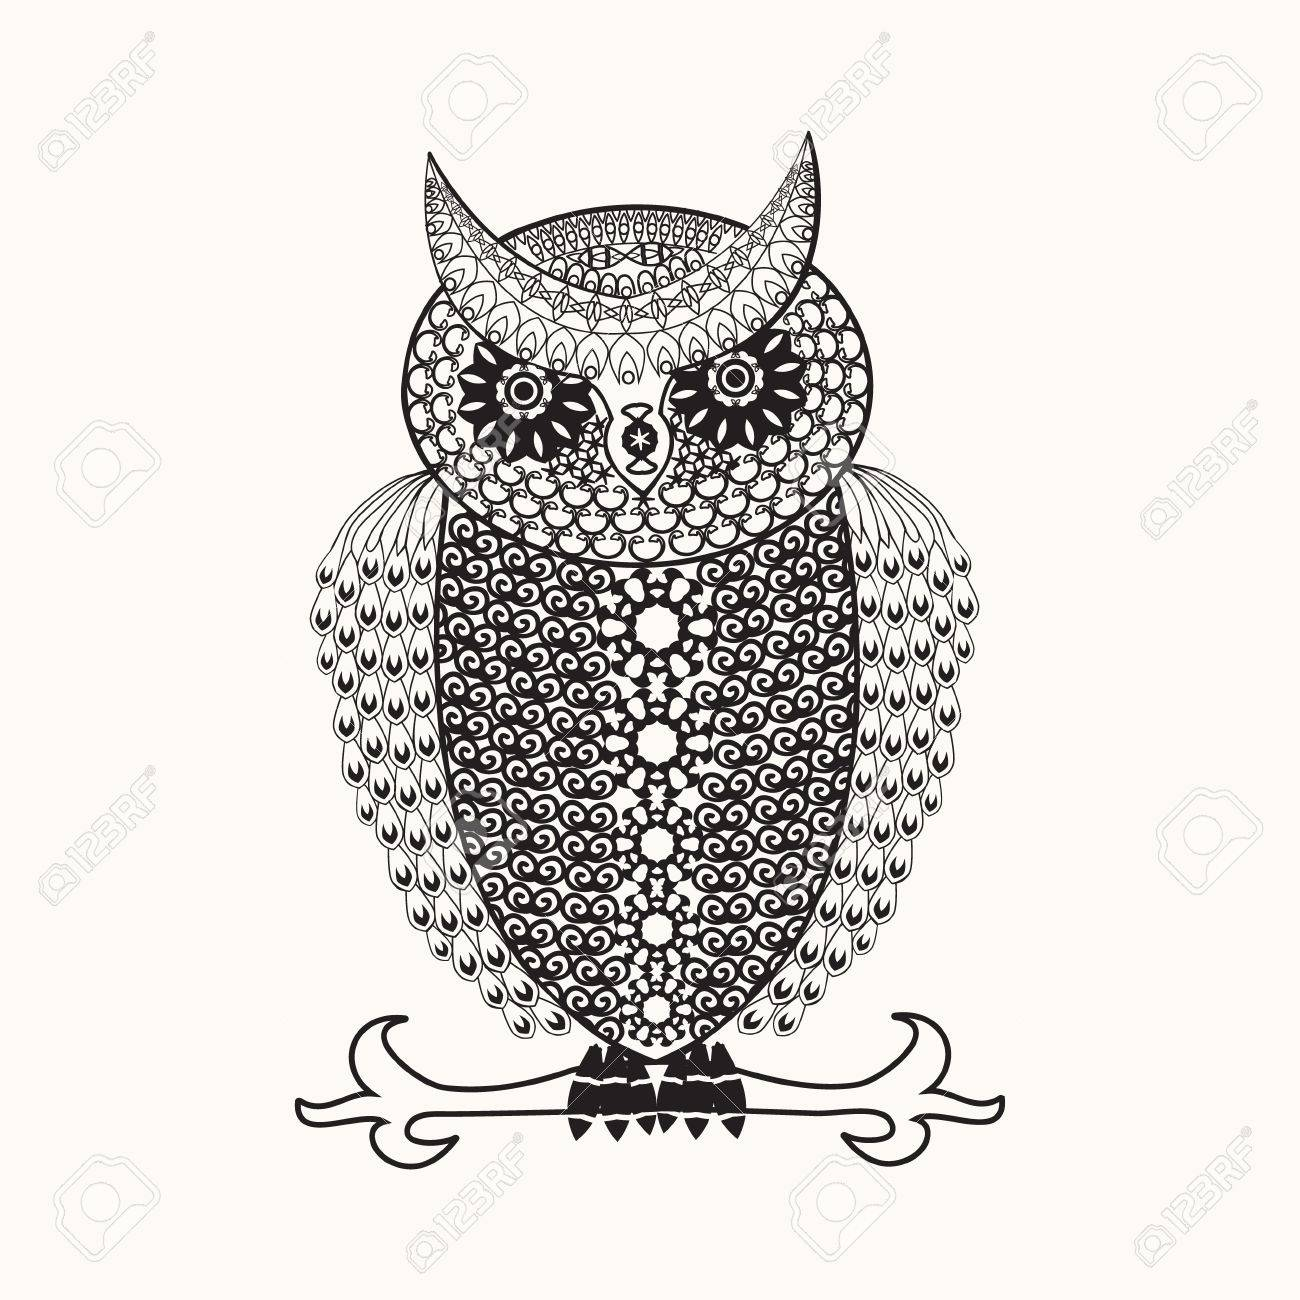 Coloring Page With Cute Owl Drawing In Style Coloring Book For